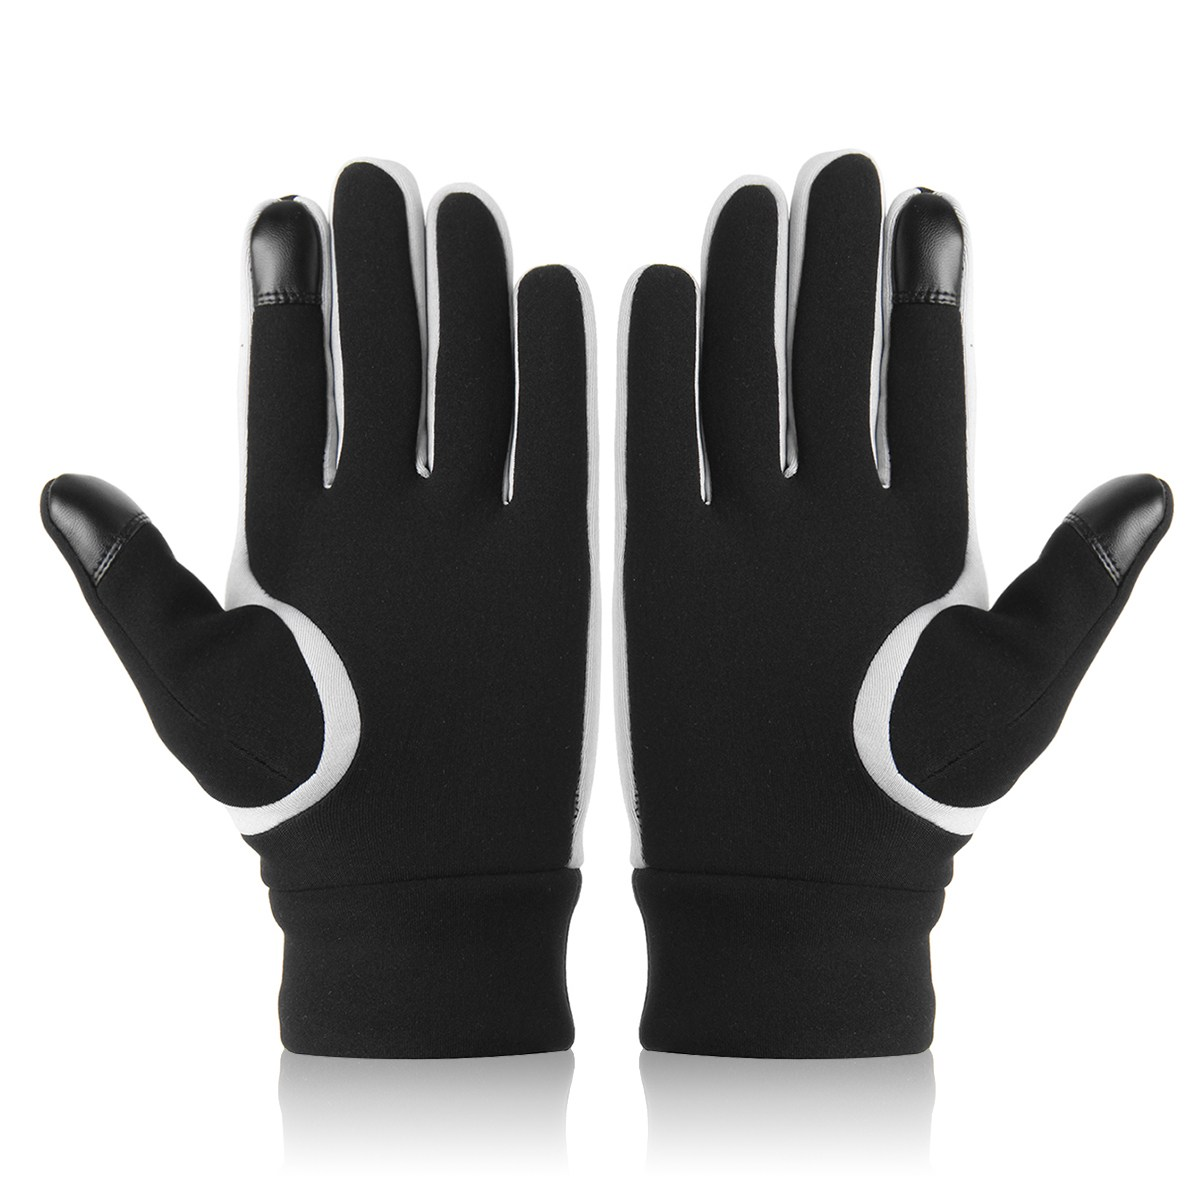 Outerdoor Men Women Winter Warm Windproof Gloves Waterproof Cycling Gloves Riding Camping Hiking Skiing